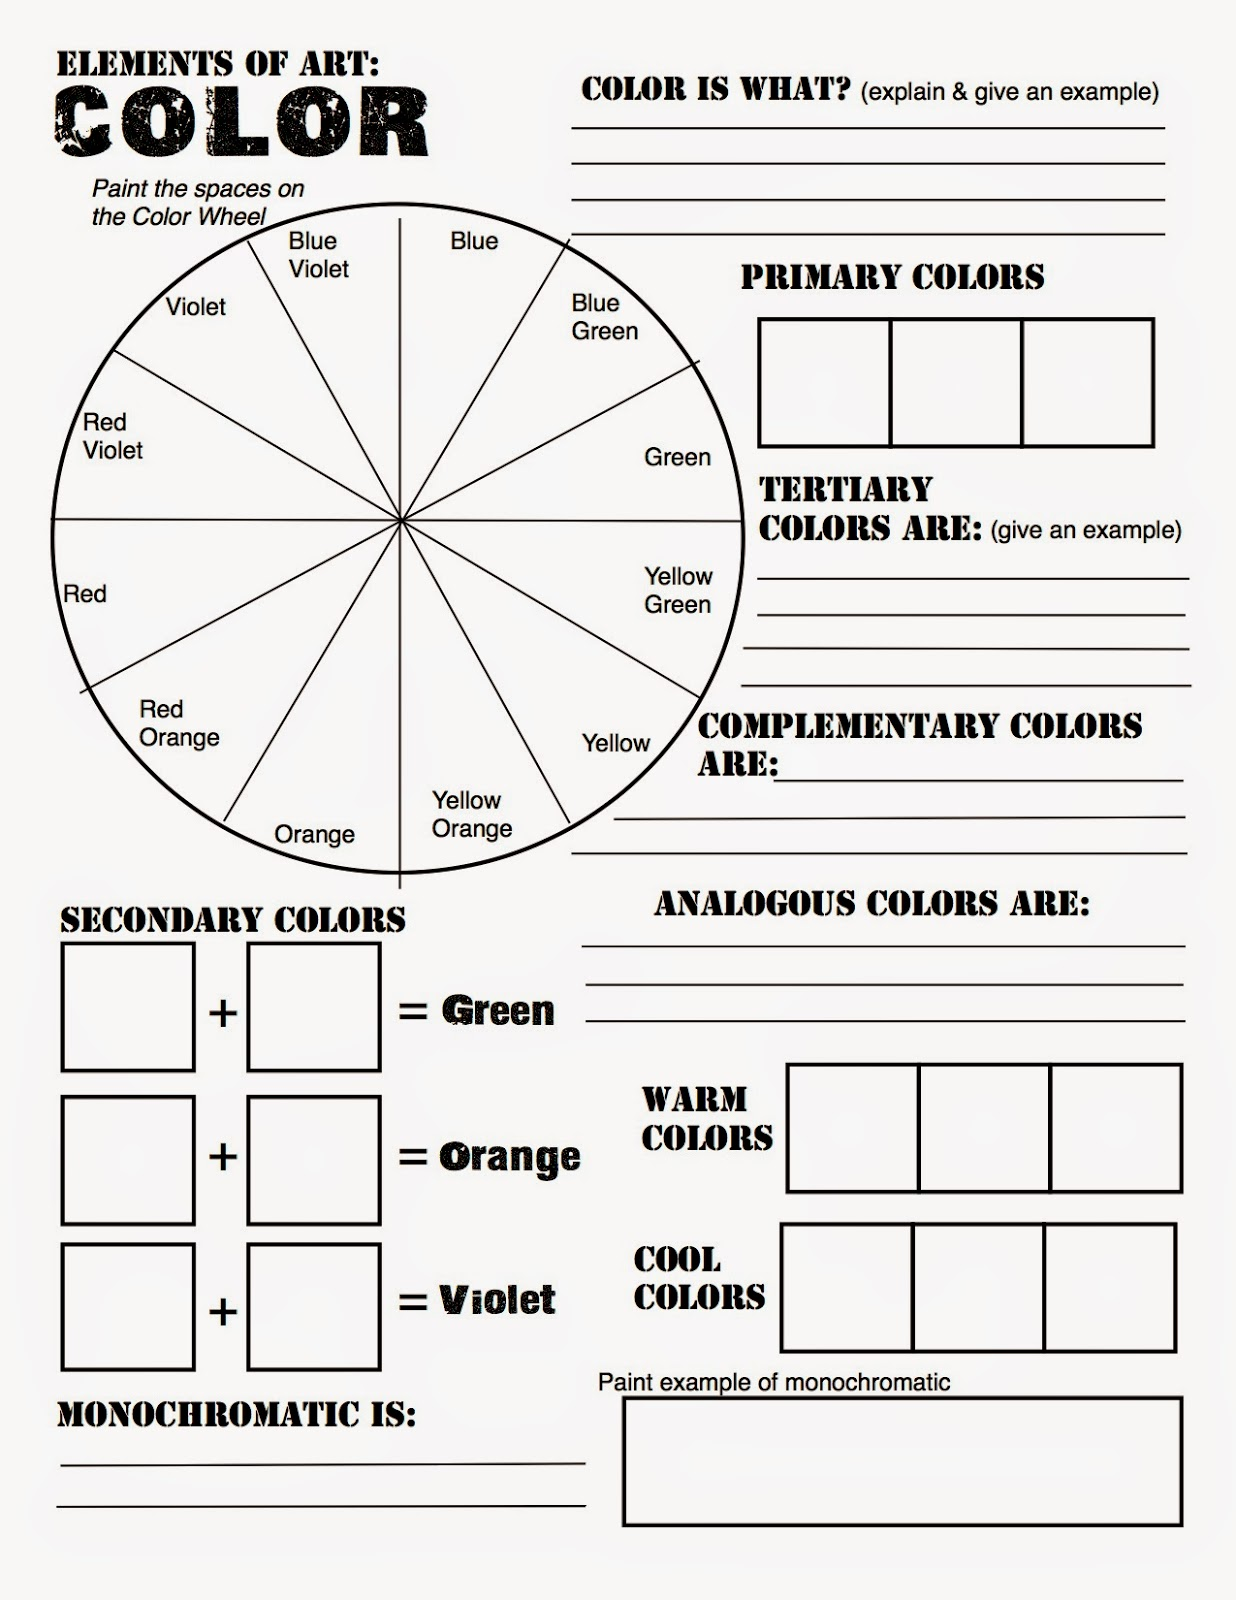 Color wheel worksheets for elementary - Art Room 170 Color Wheel Poster Due 111814 Grade 8 Sample Color Wheel Chart